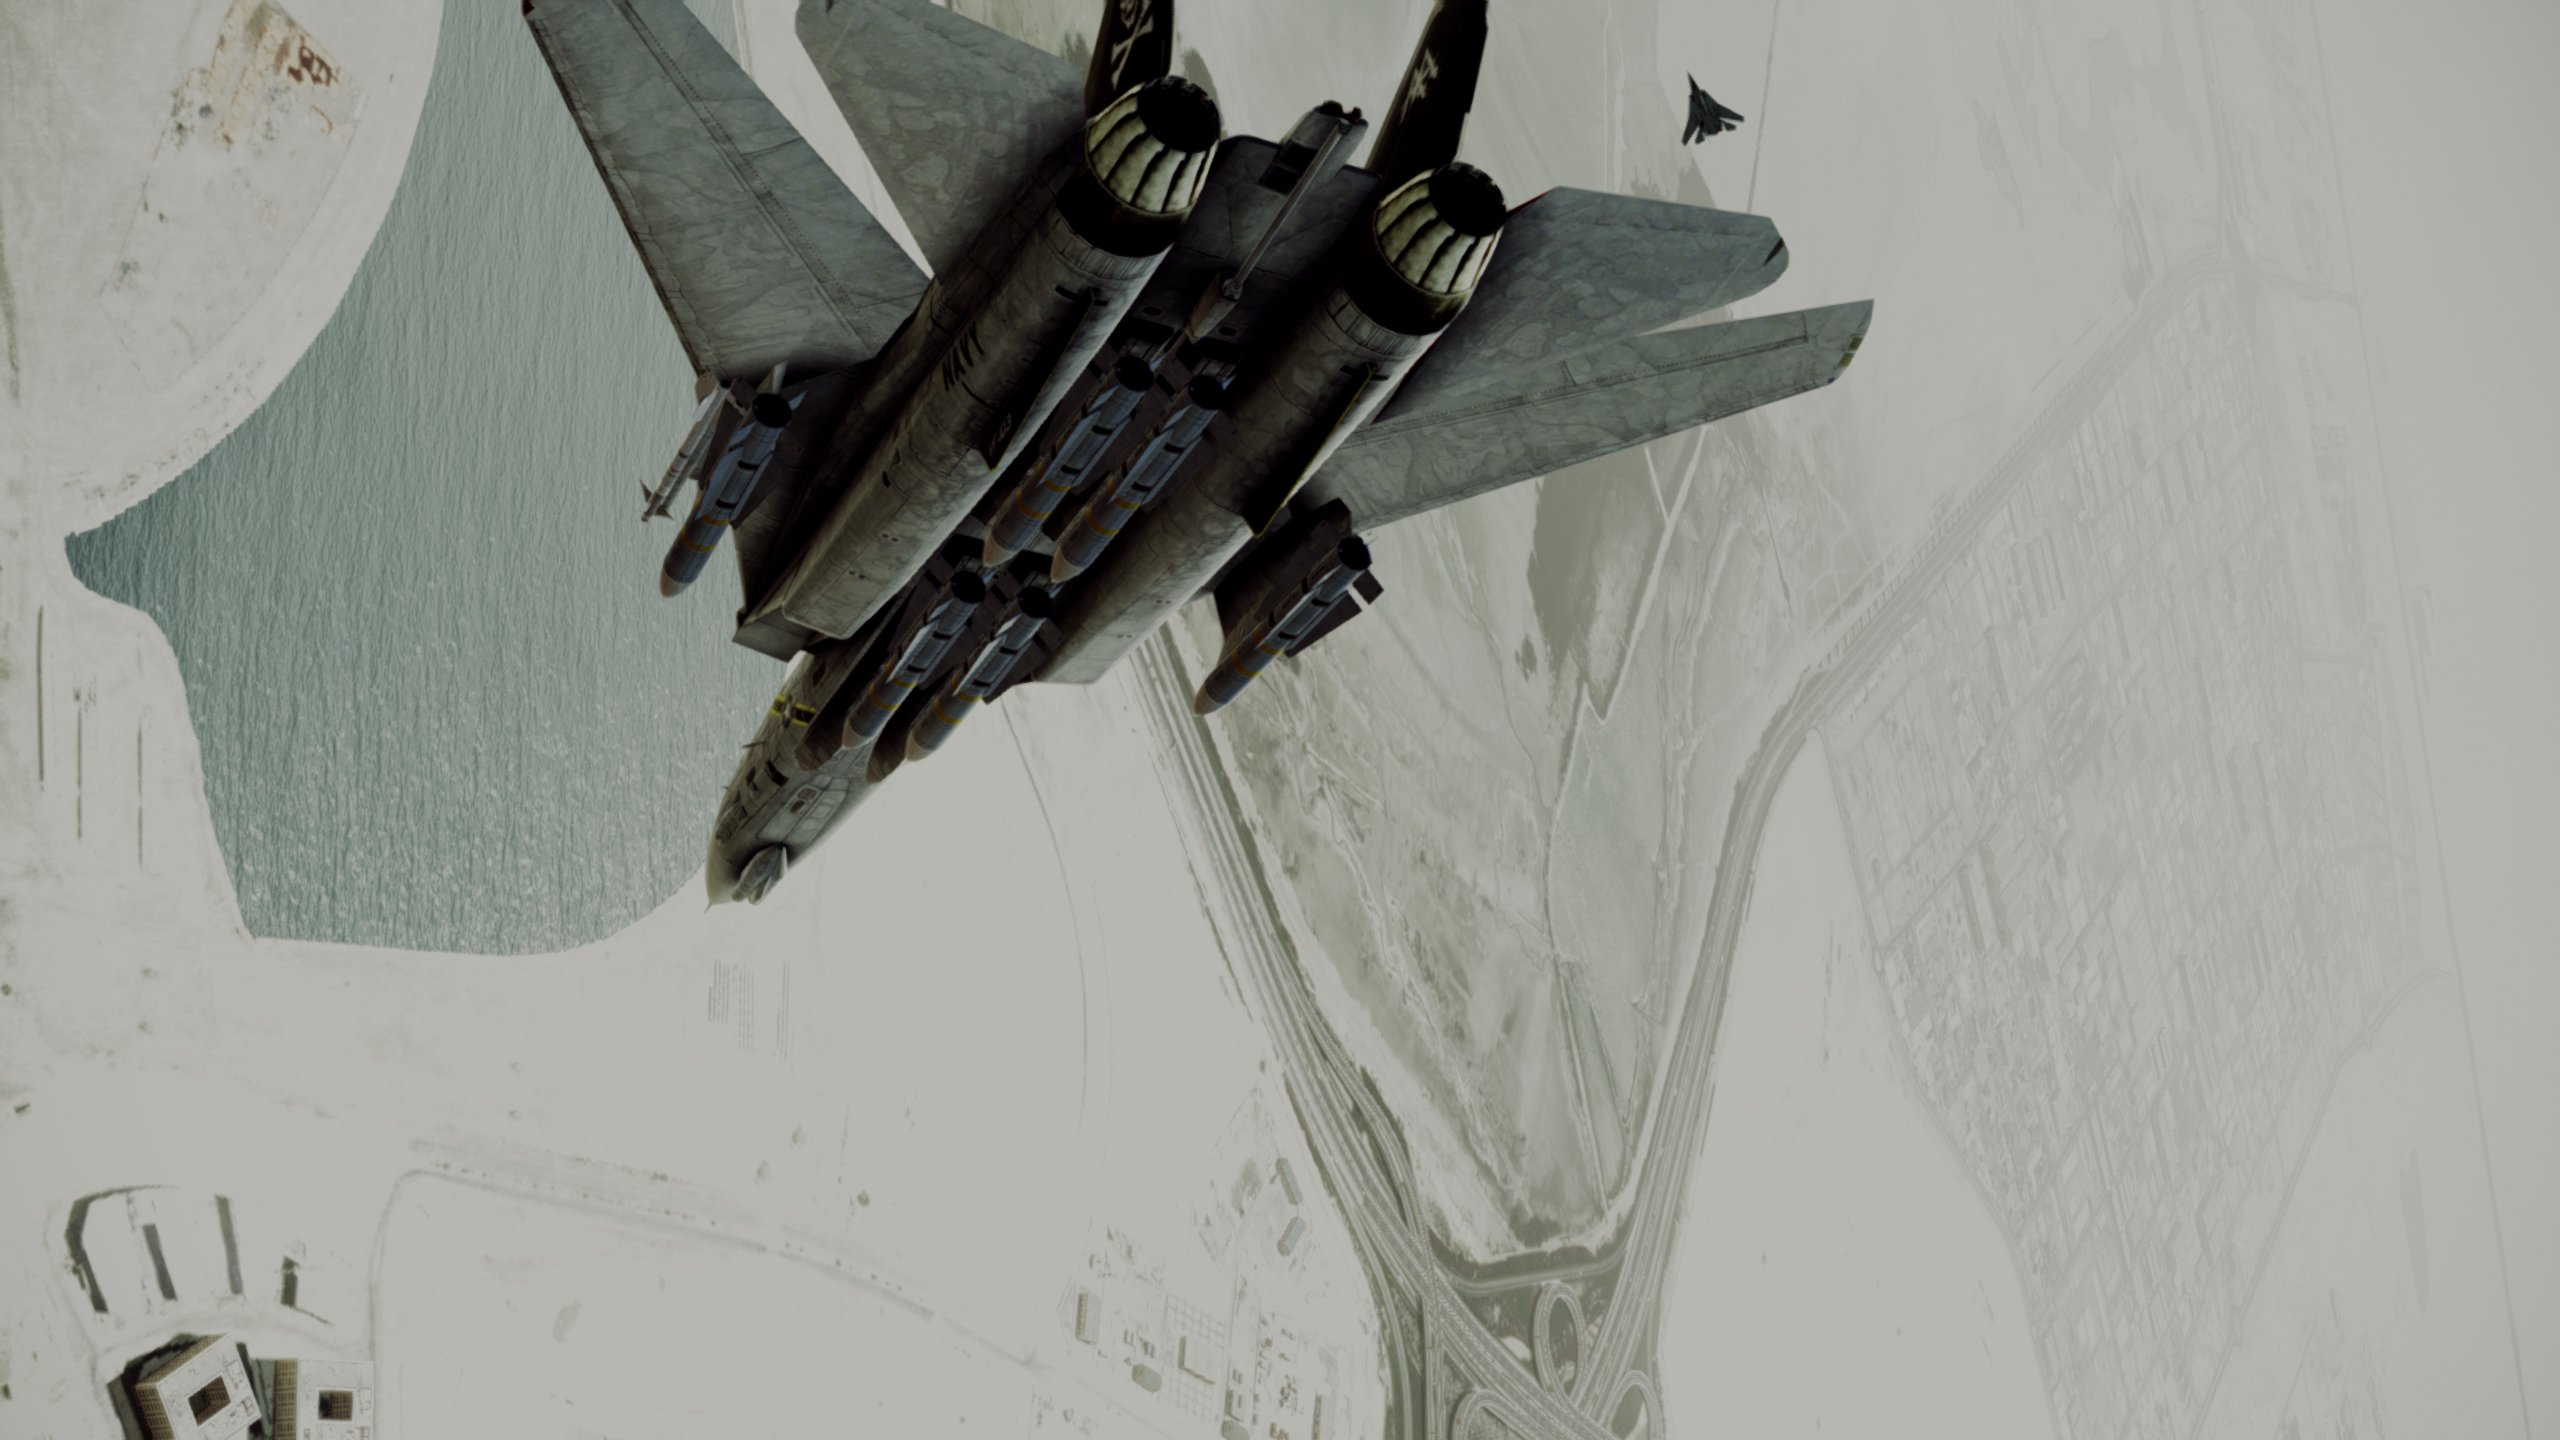 Free download Ace Combat: Assault Horizon background ID:25555 hd 2560x1440 for desktop